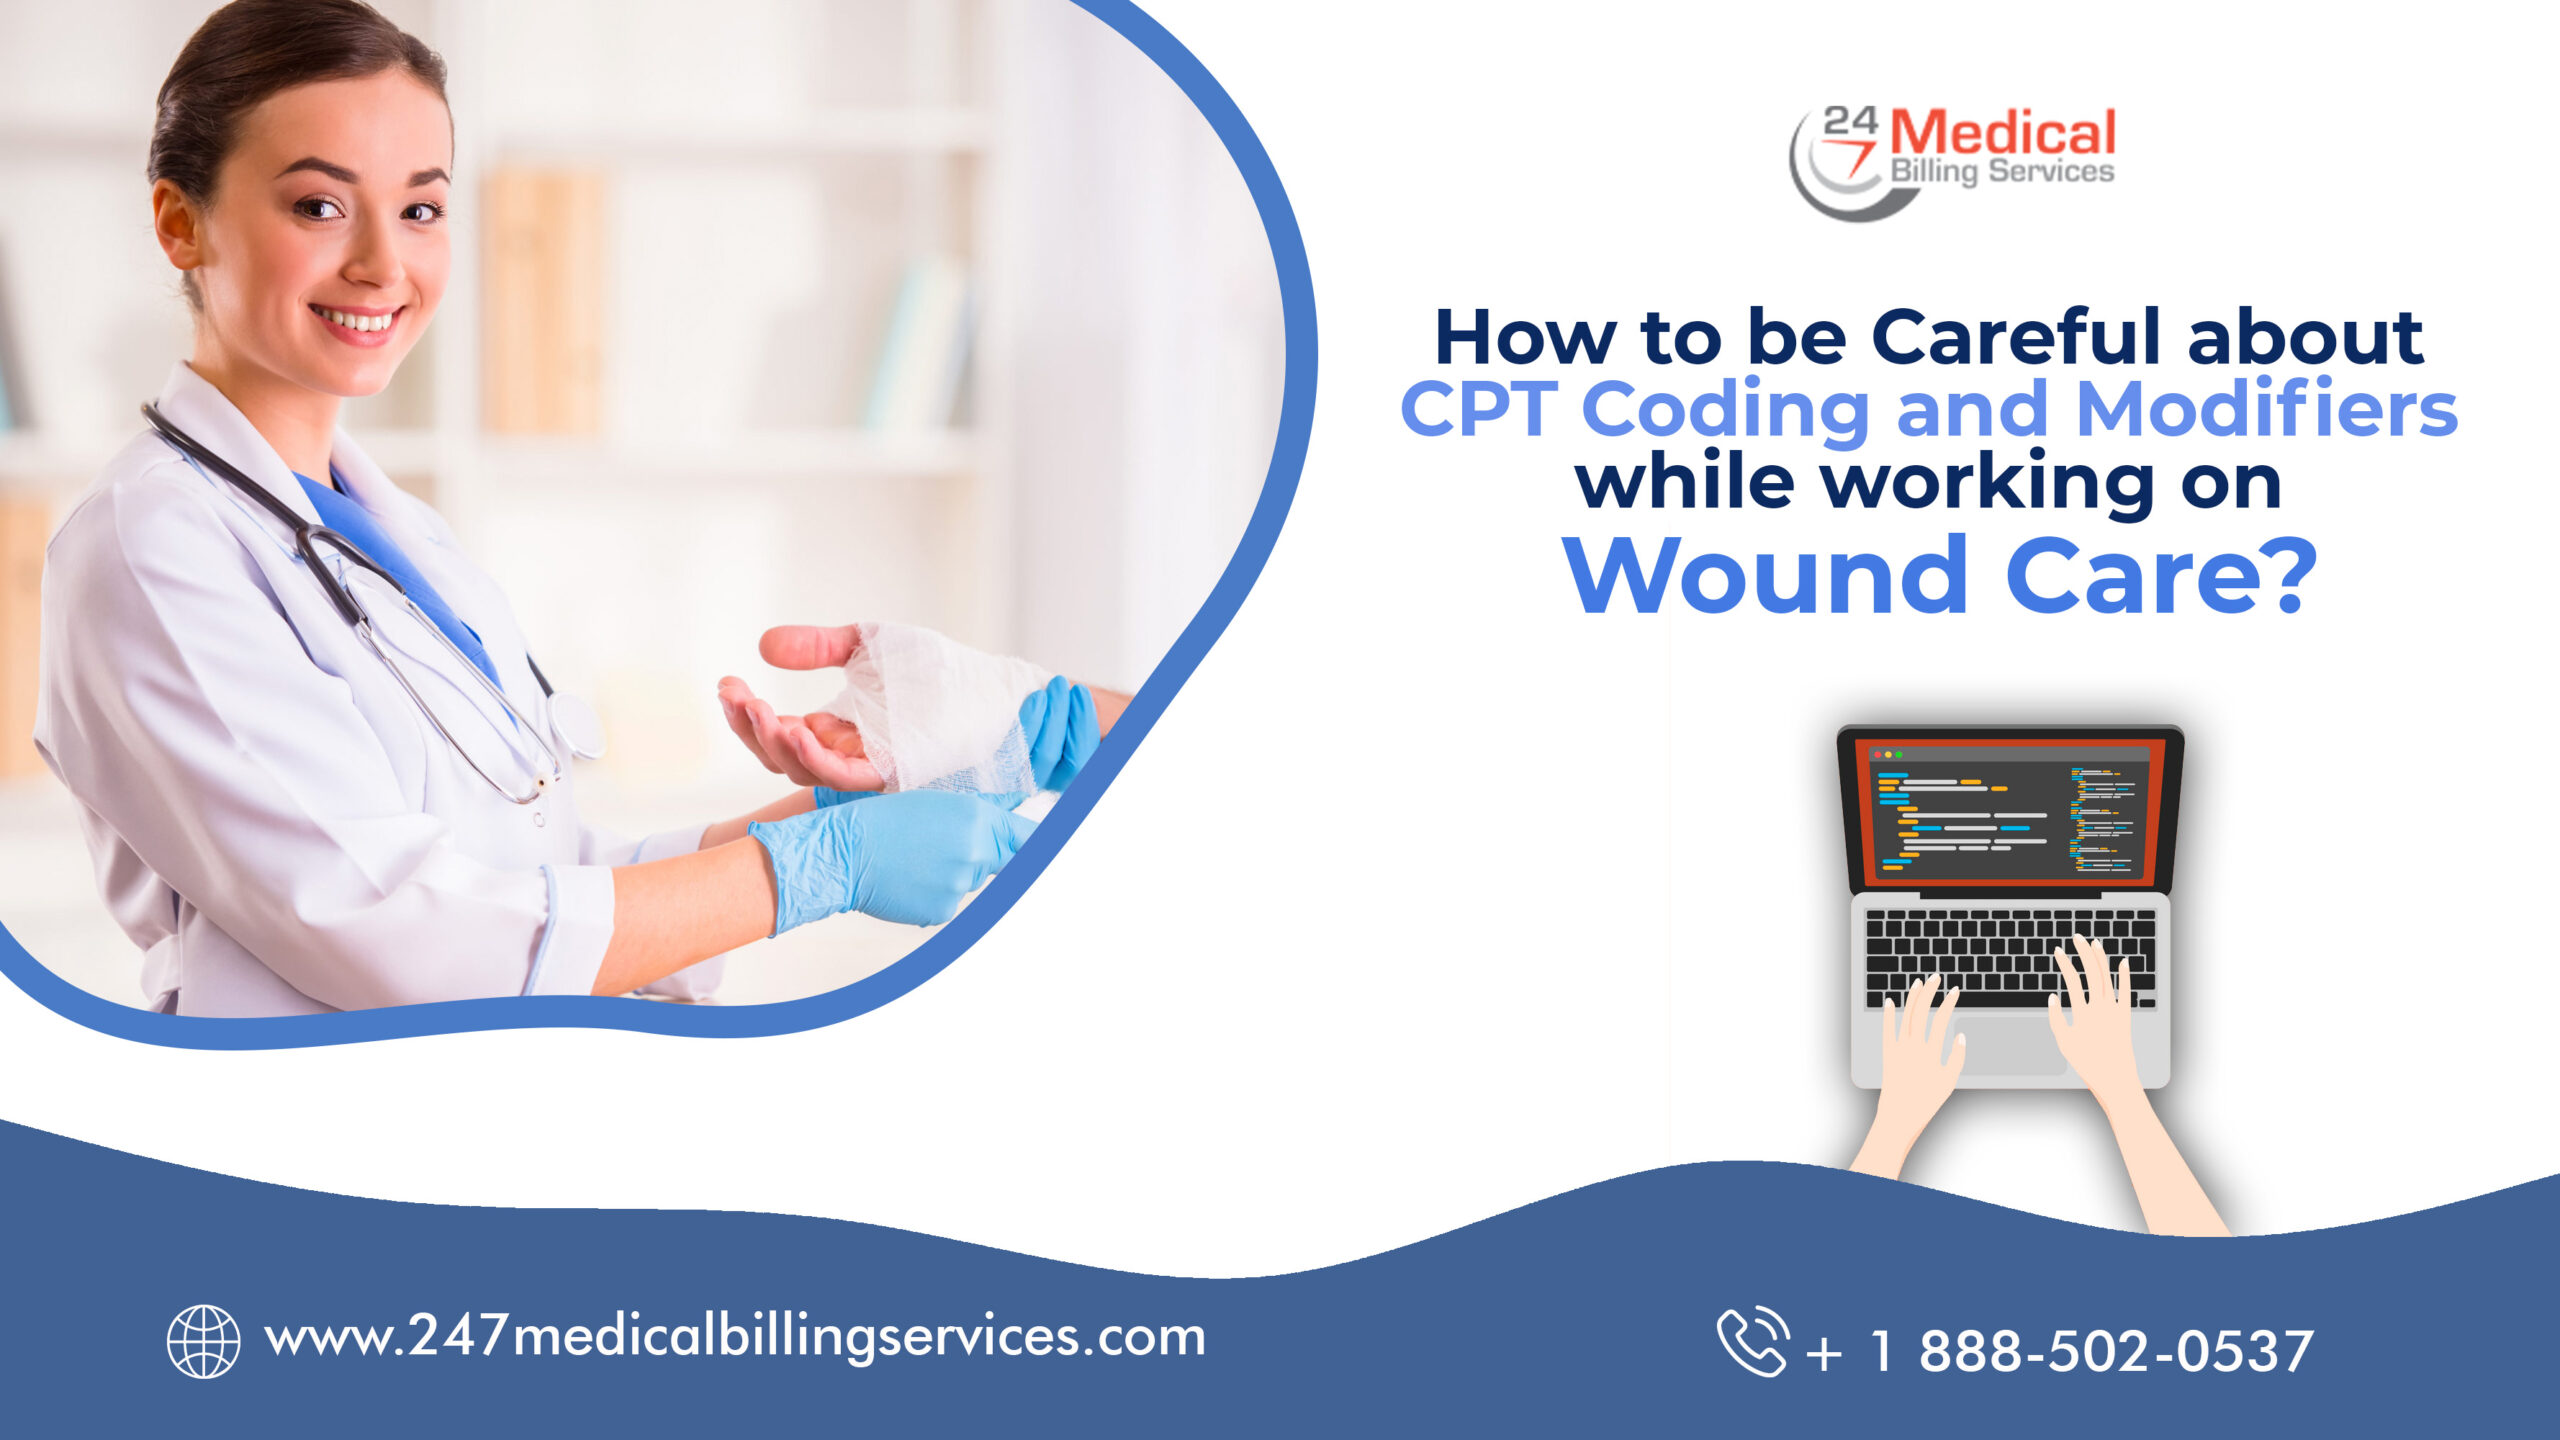 How to be Careful about CPT Coding and Modifiers while working on Wound Care?